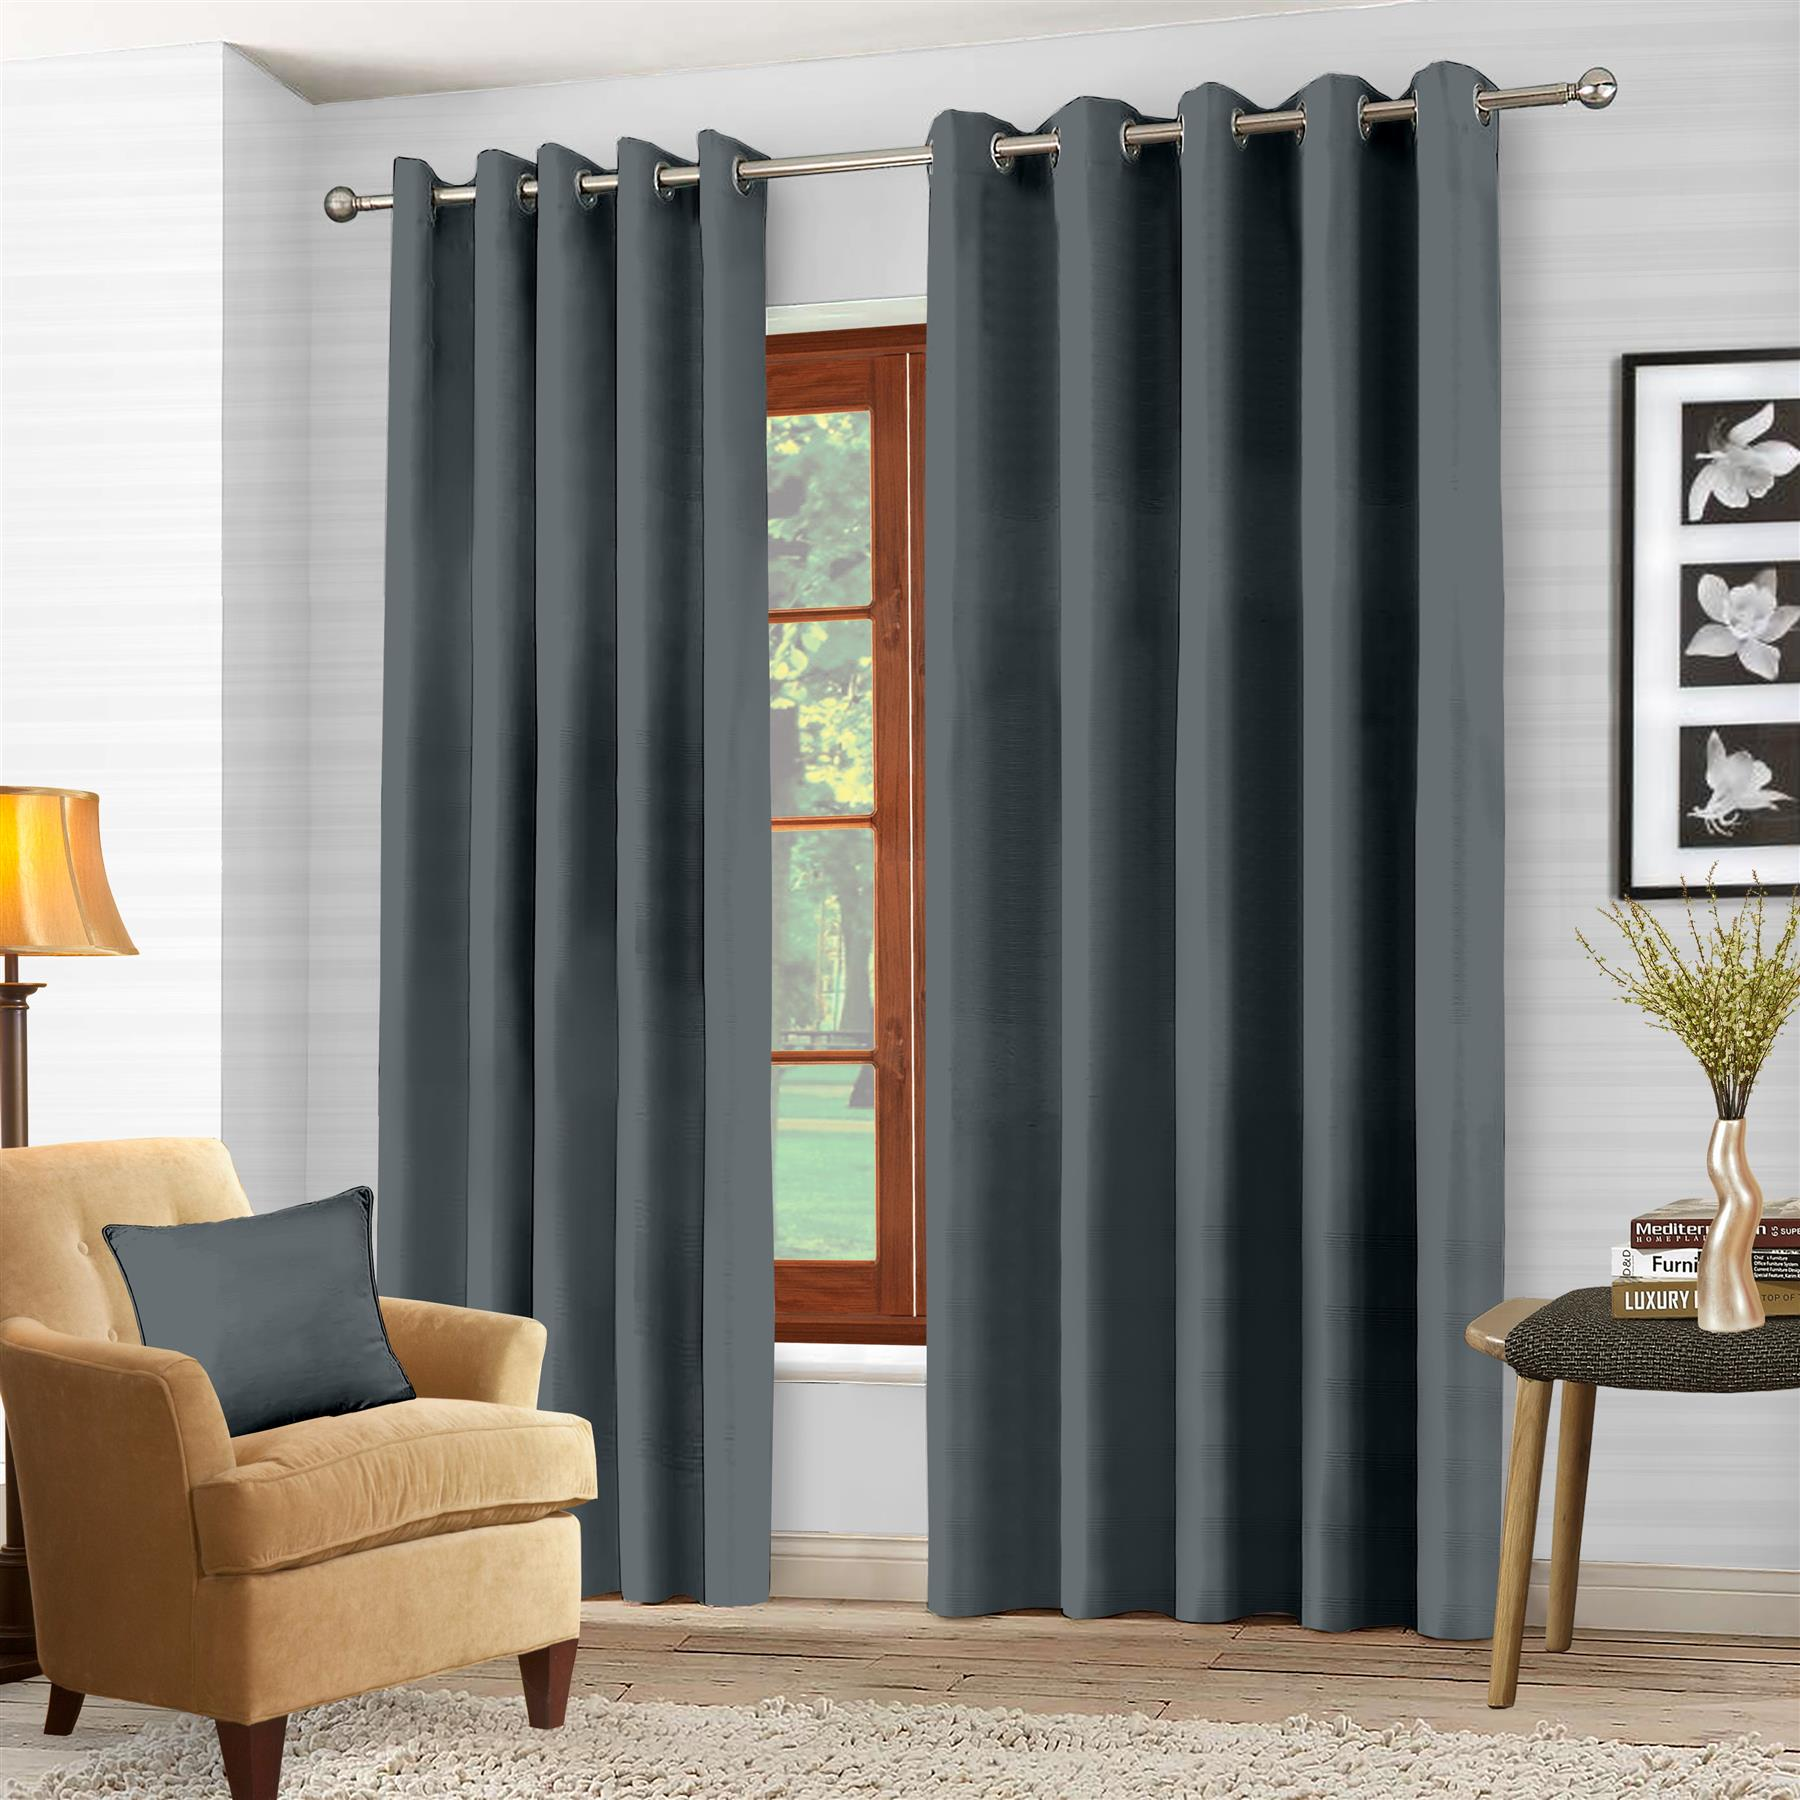 Luxury-Thermal-Blackout-Eyelet-Ring-Top-Curtains-Pair-with-tie-backs thumbnail 17